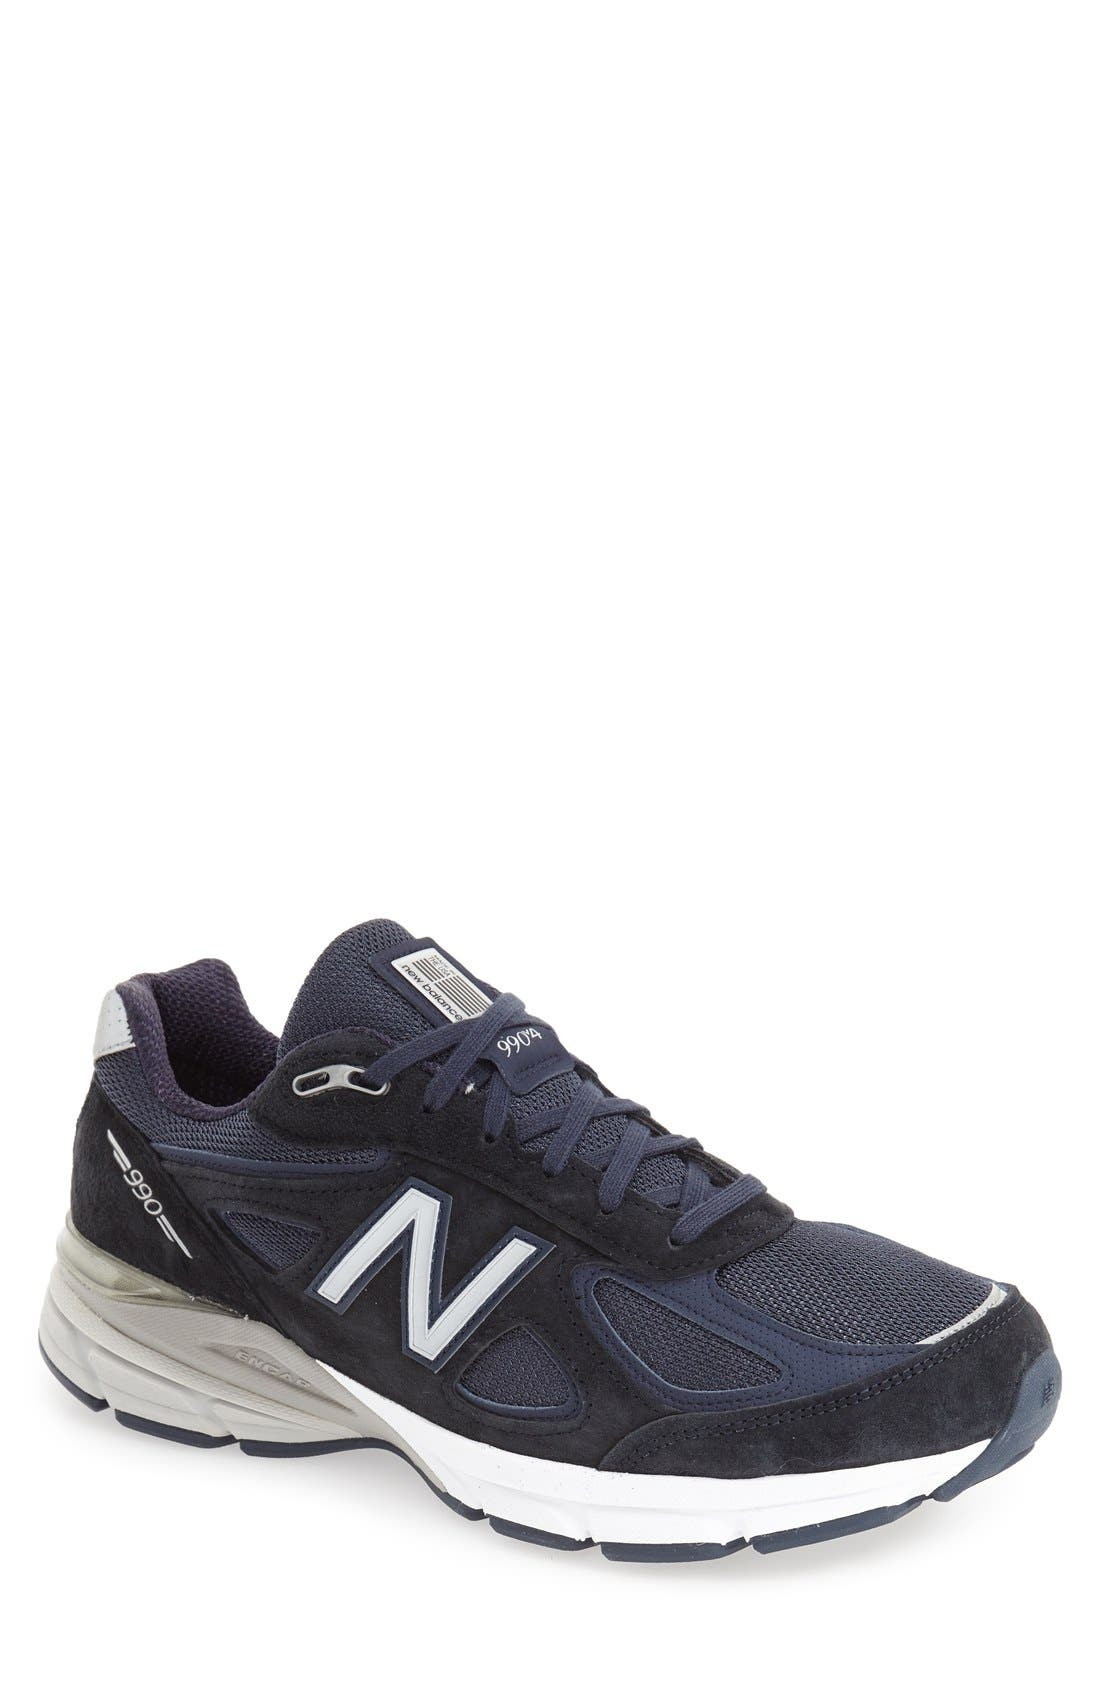 '990' Running Shoe,                             Main thumbnail 1, color,                             NAVY